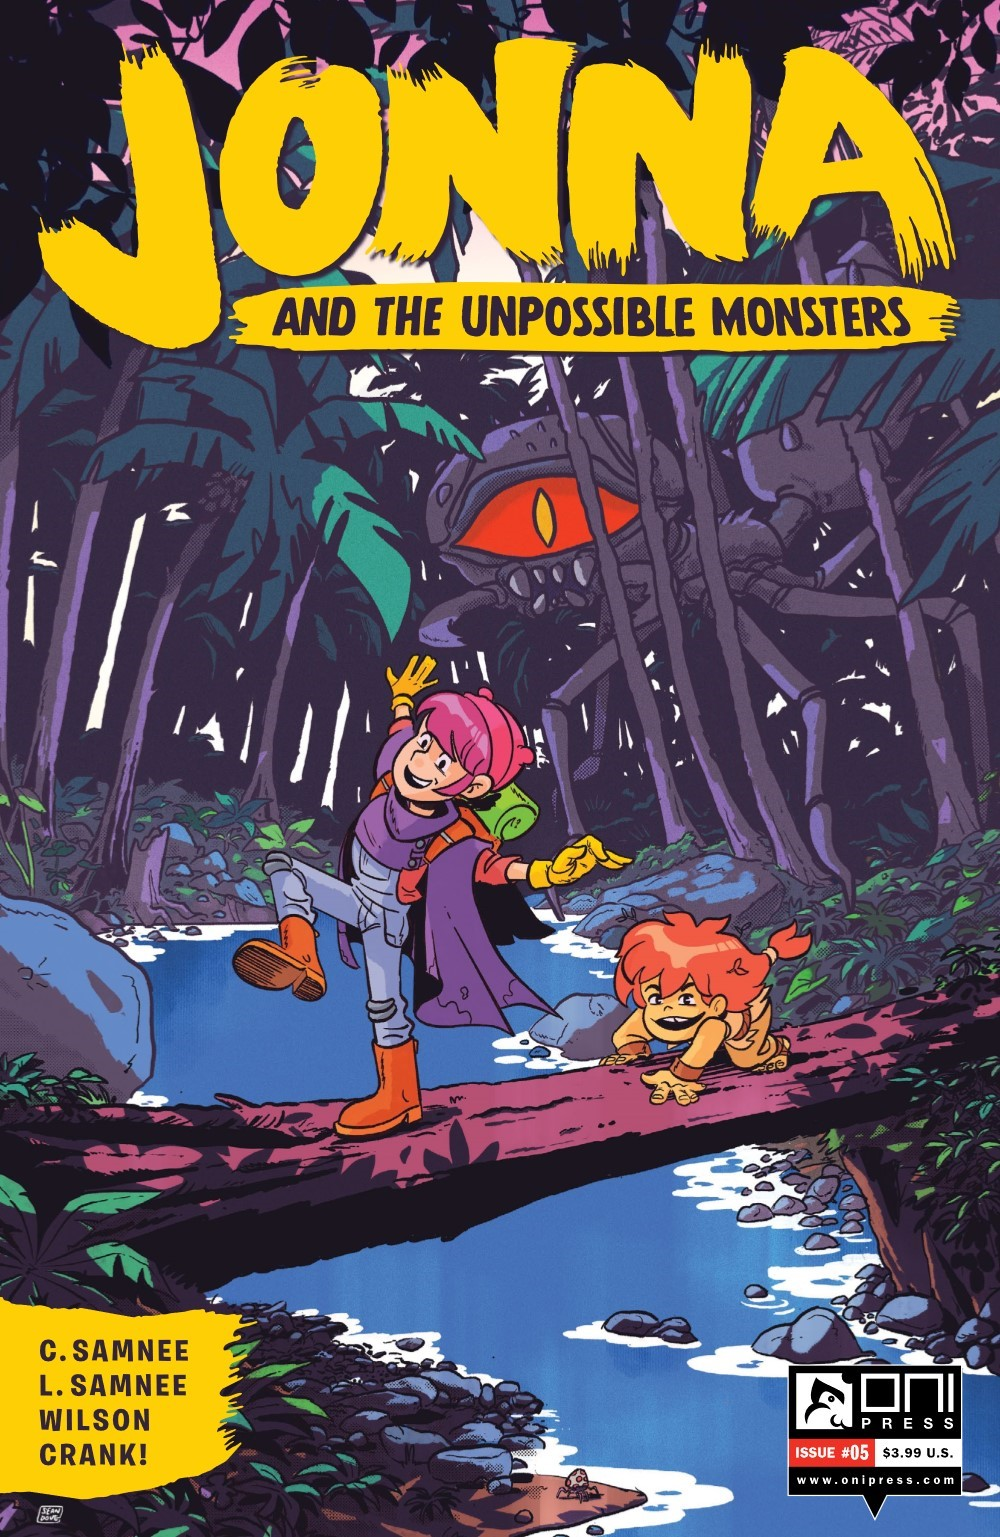 JONNA-5-REFERENCE-02 ComicList: Oni Press New Releases for 08/18/2021